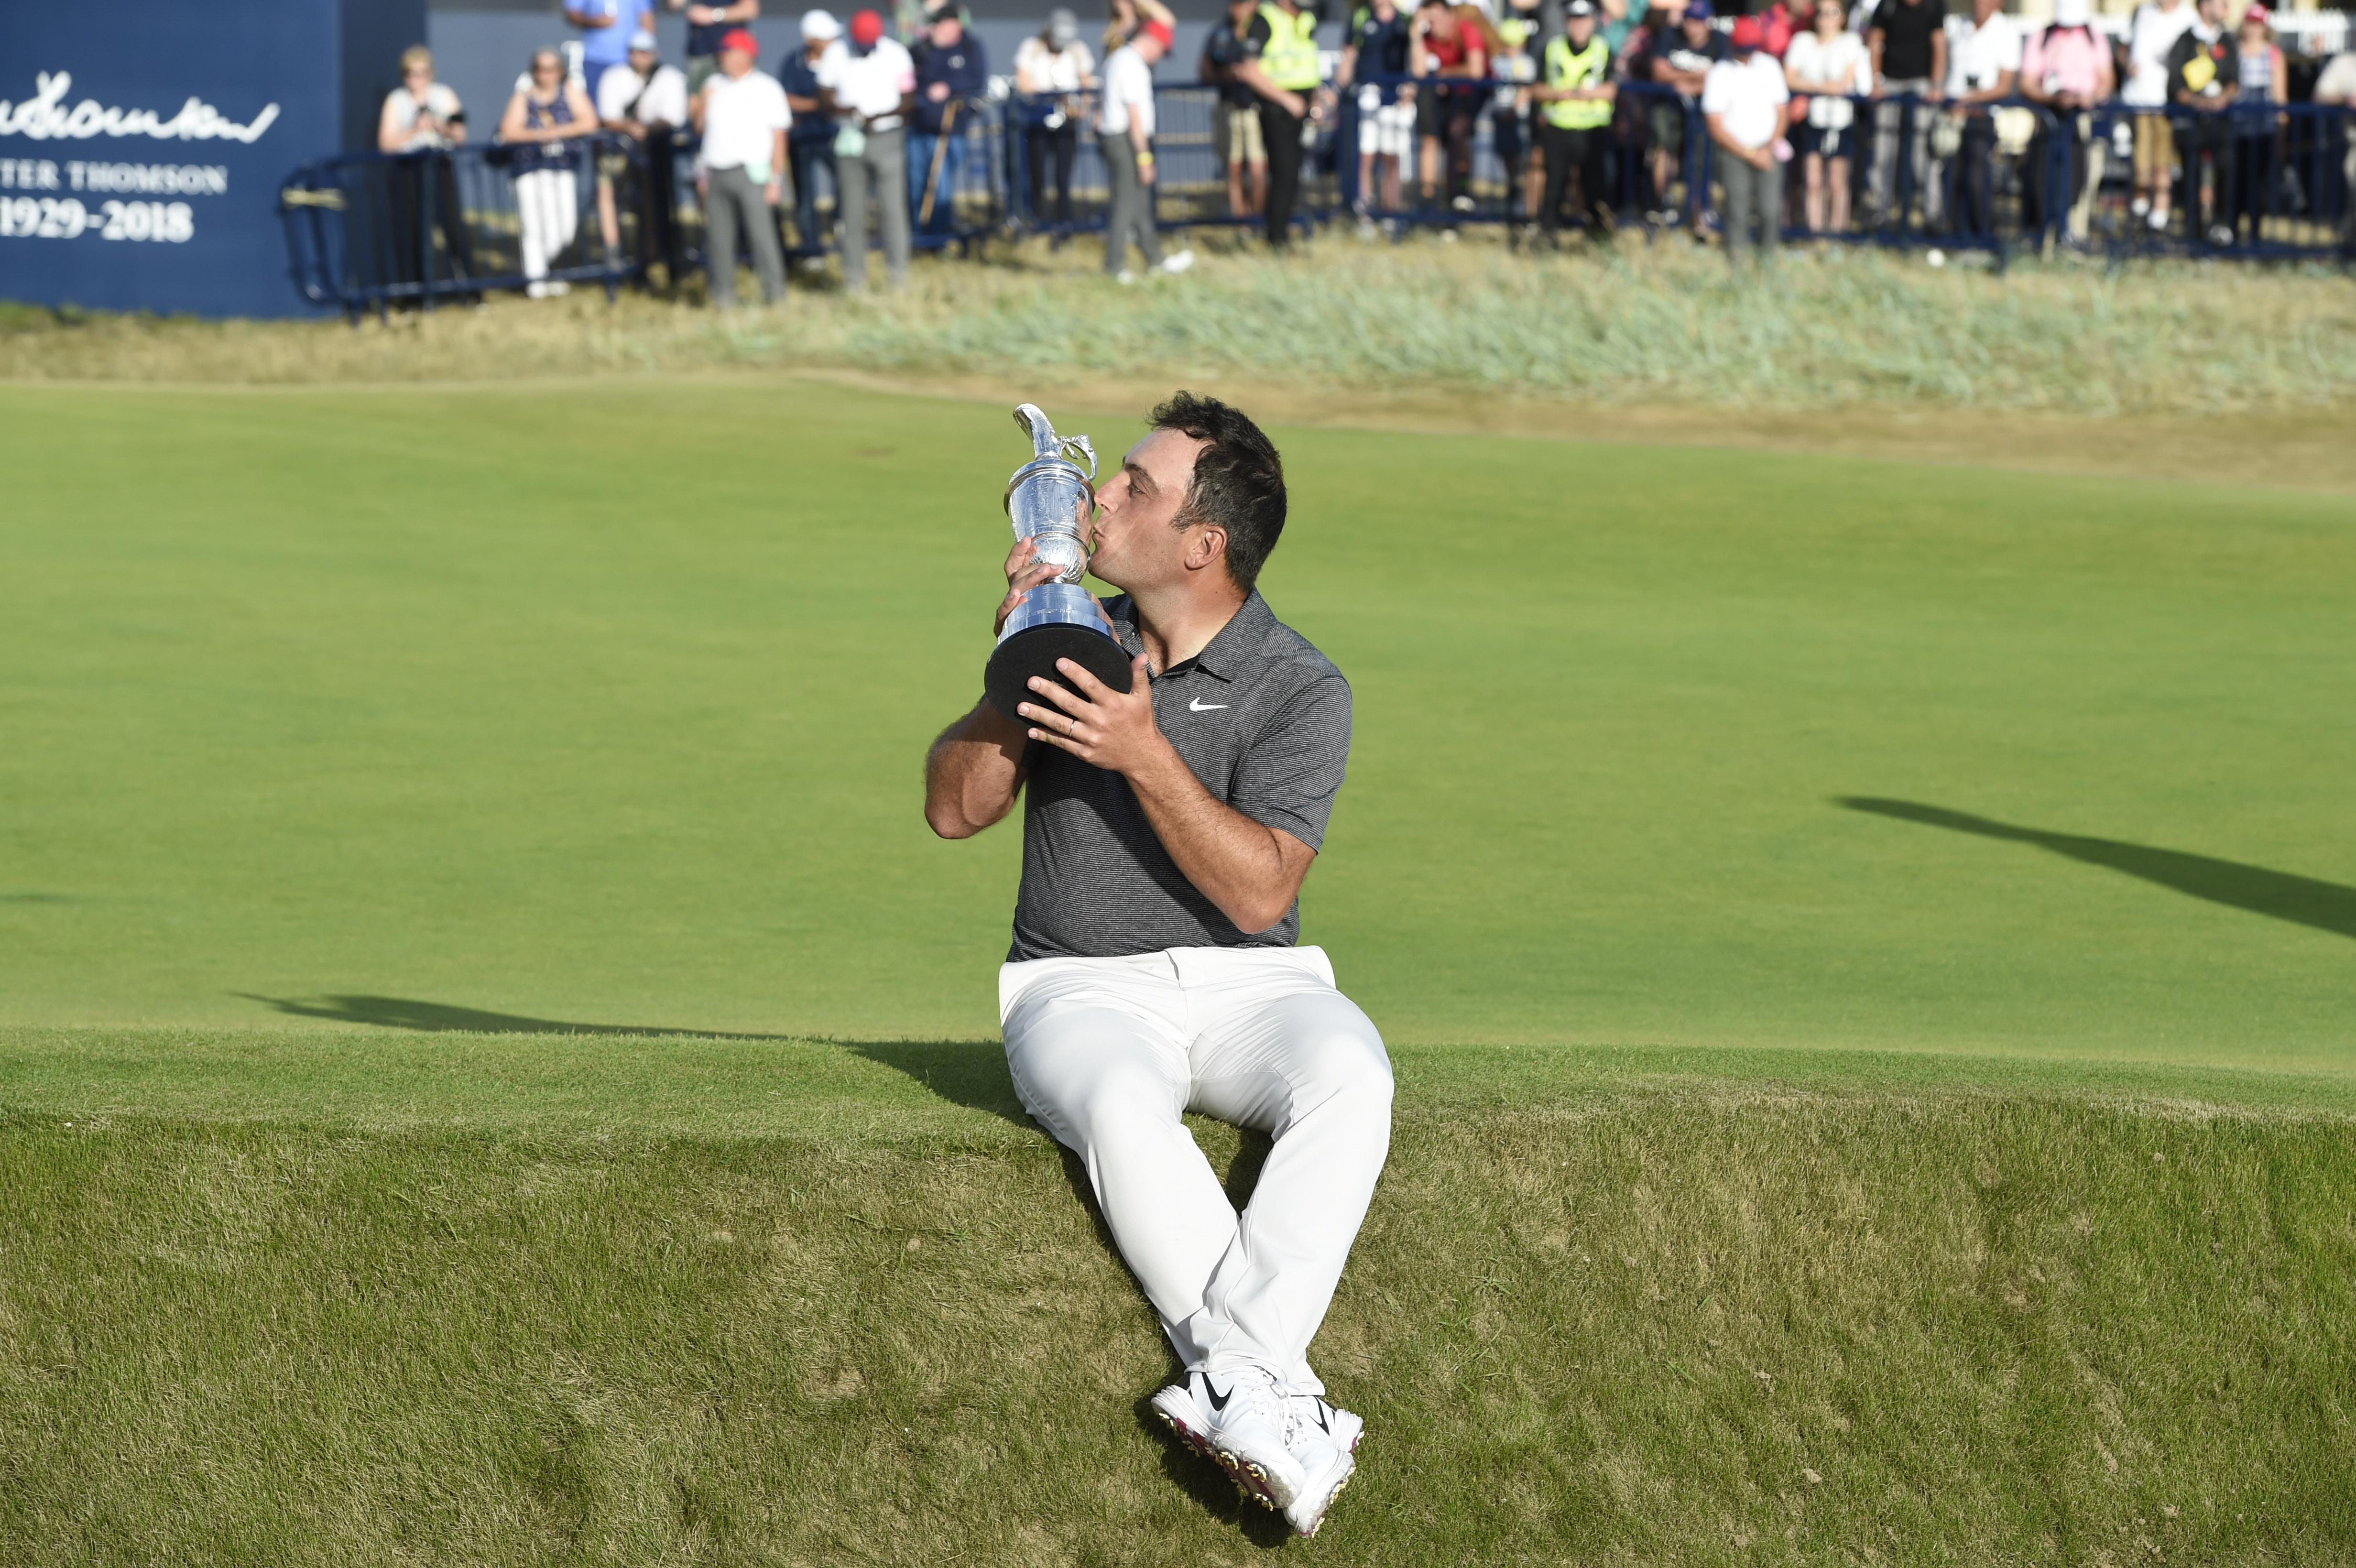 Jul 22, 2018; Carnoustie, Angus, SCT; Francesco Molinari holds the Claret Jug and poses for a photo after winning the Open Championship golf tournament at Carnoustie Golf Links. Mandatory Credit: Ian Rutherford-USA TODAY Sports